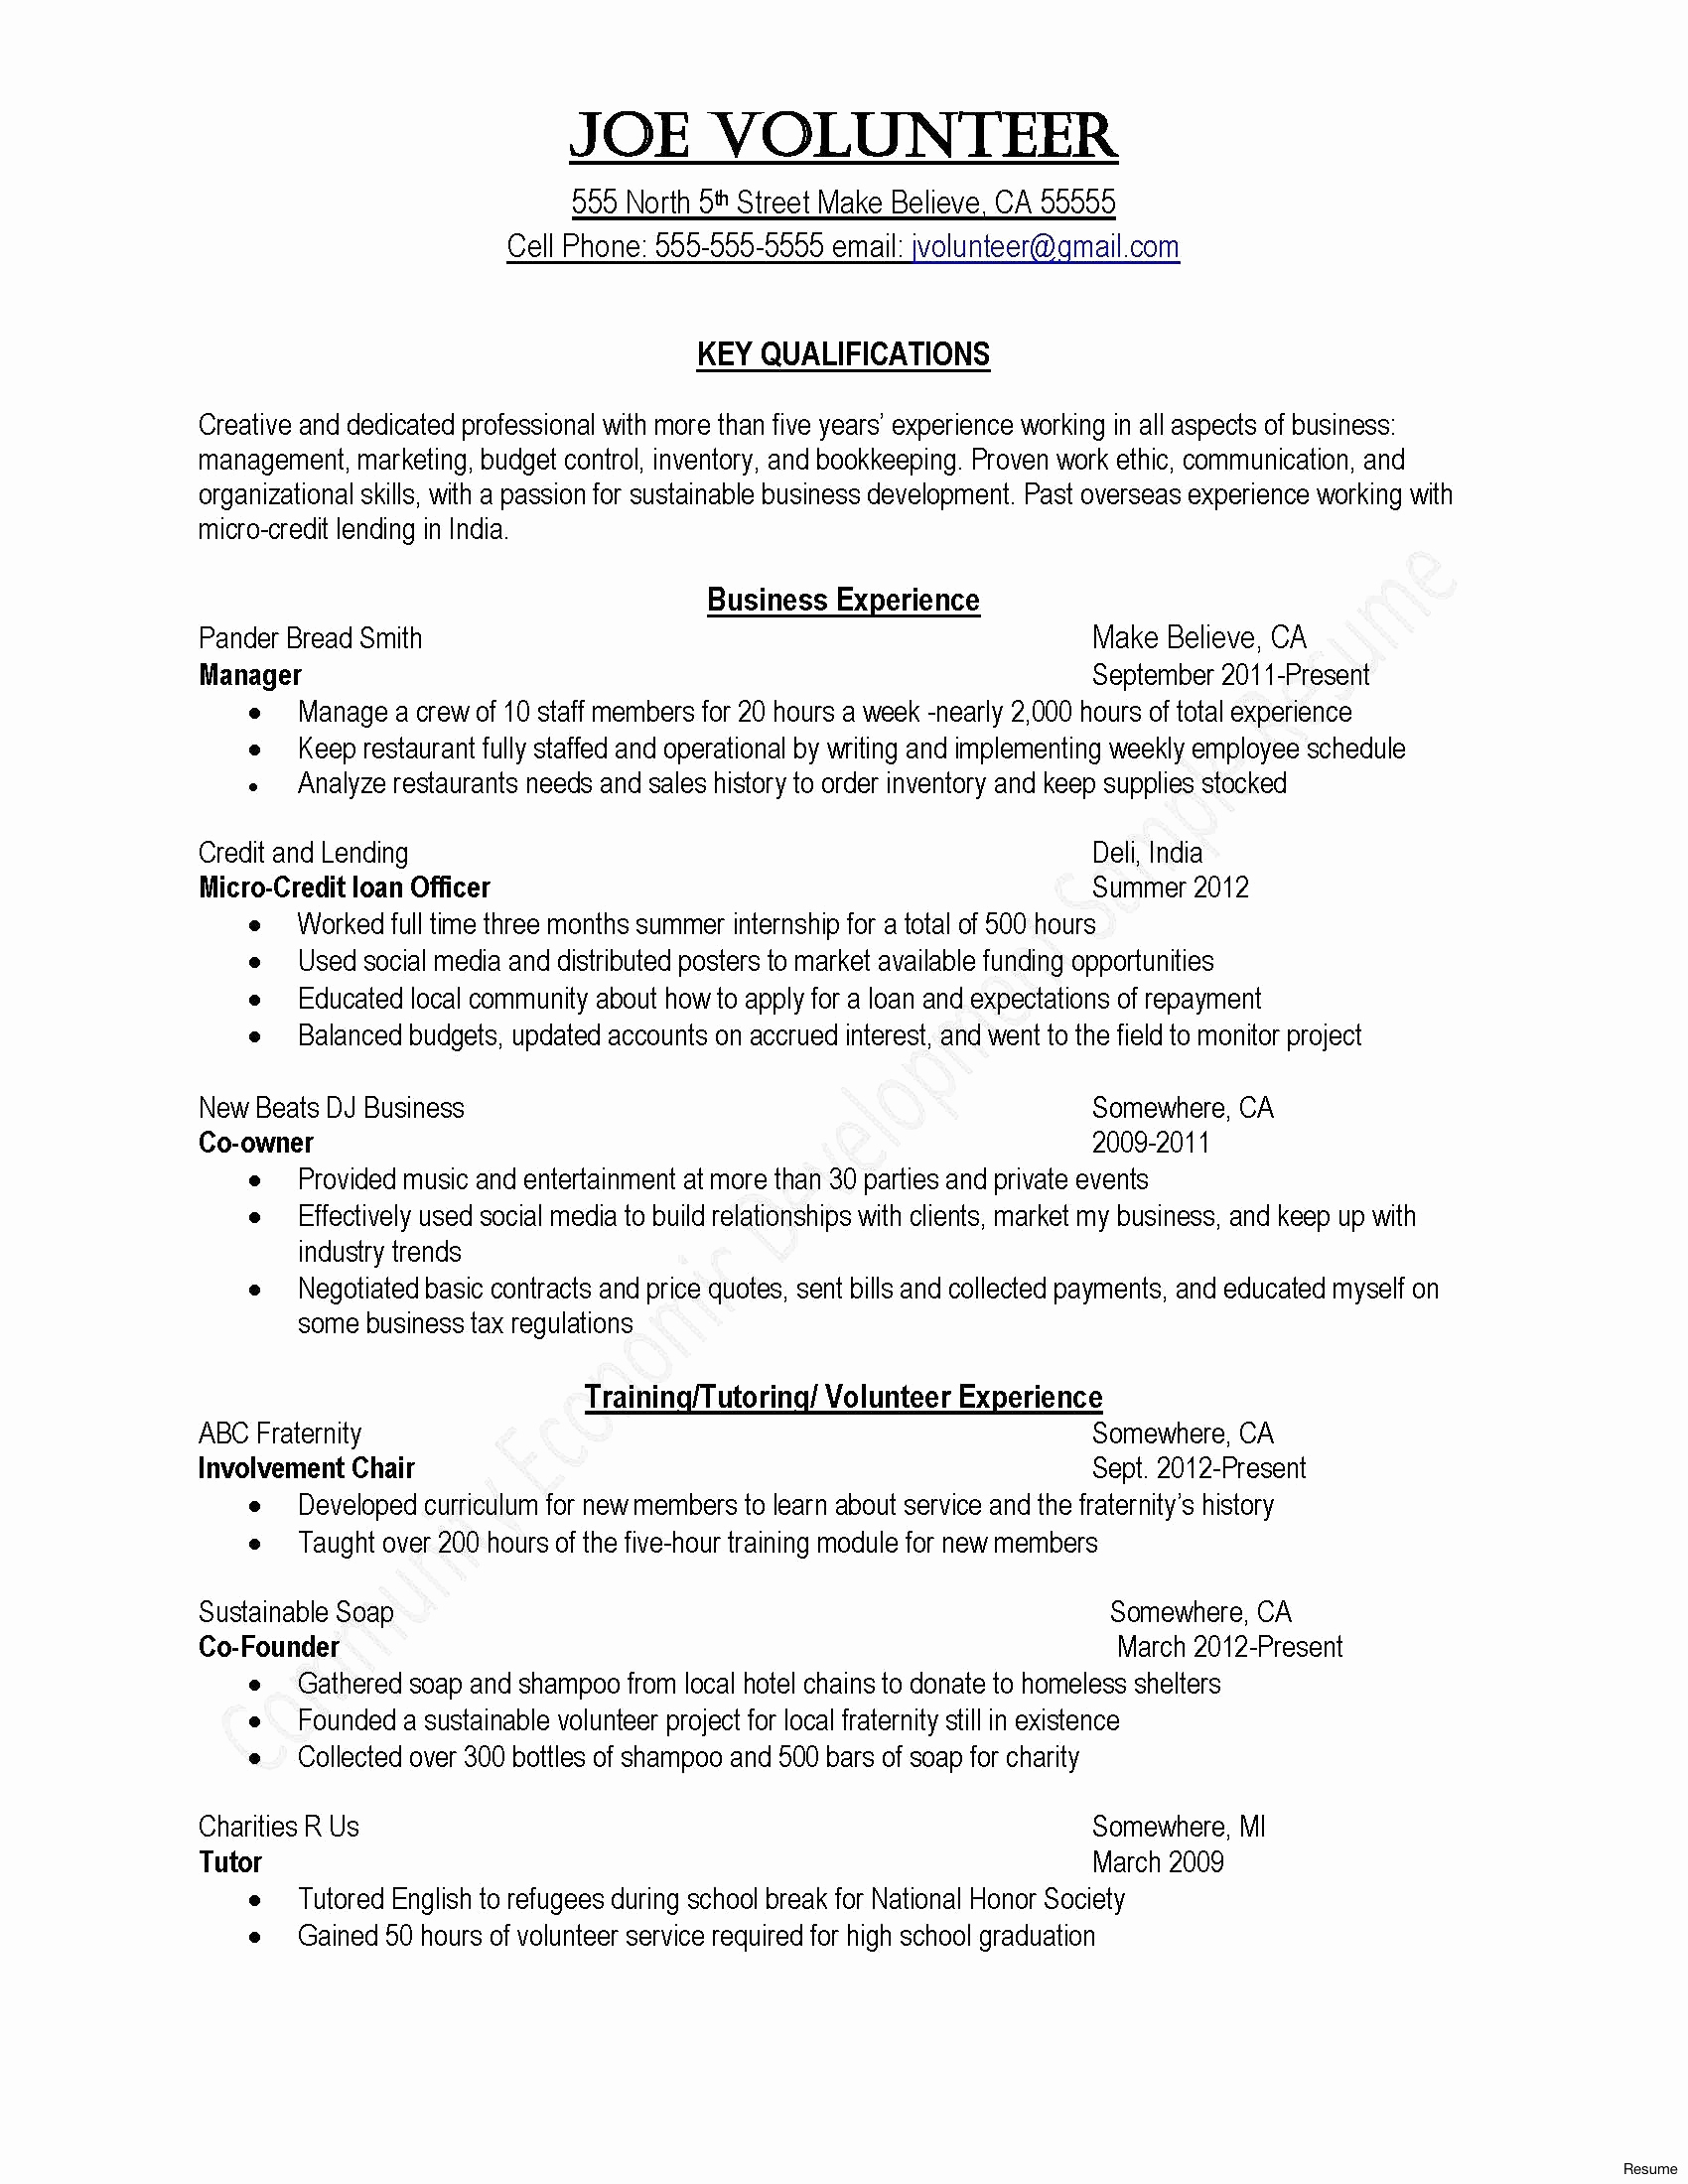 Artist Cover Letter Template - Cover Letter Editor Beautiful Artist Resume Template Awesome Resume